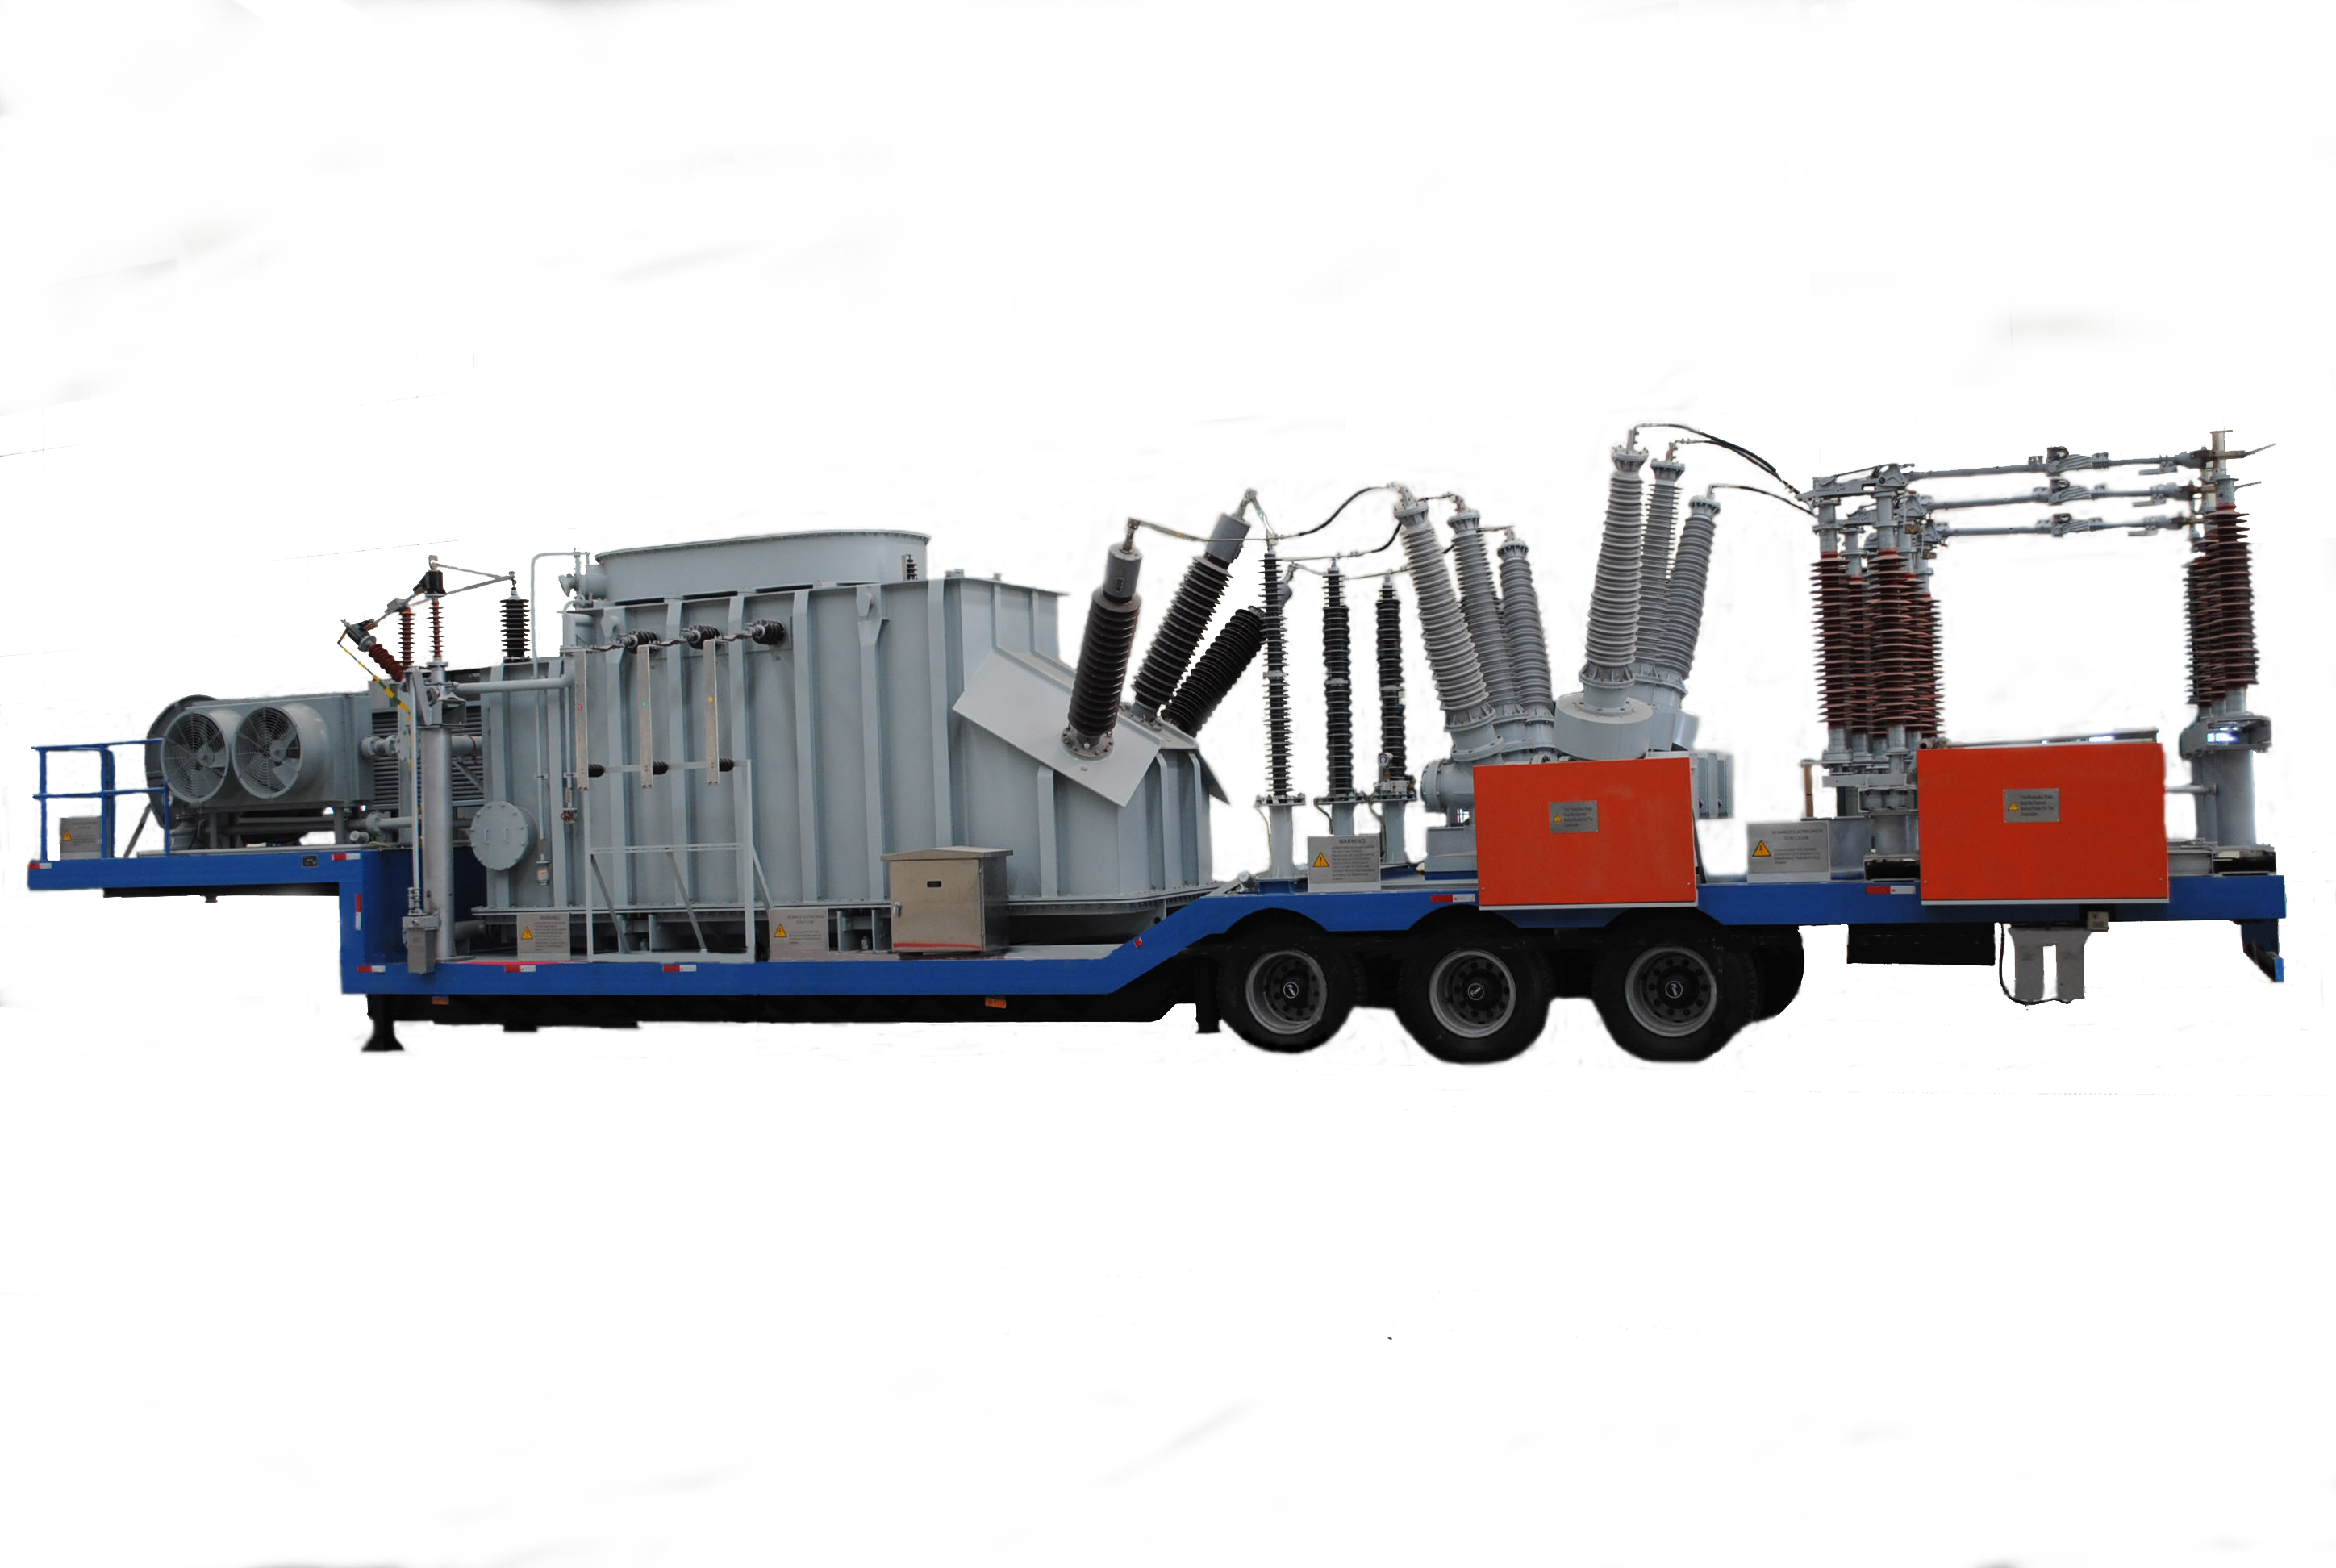 Mobile substation